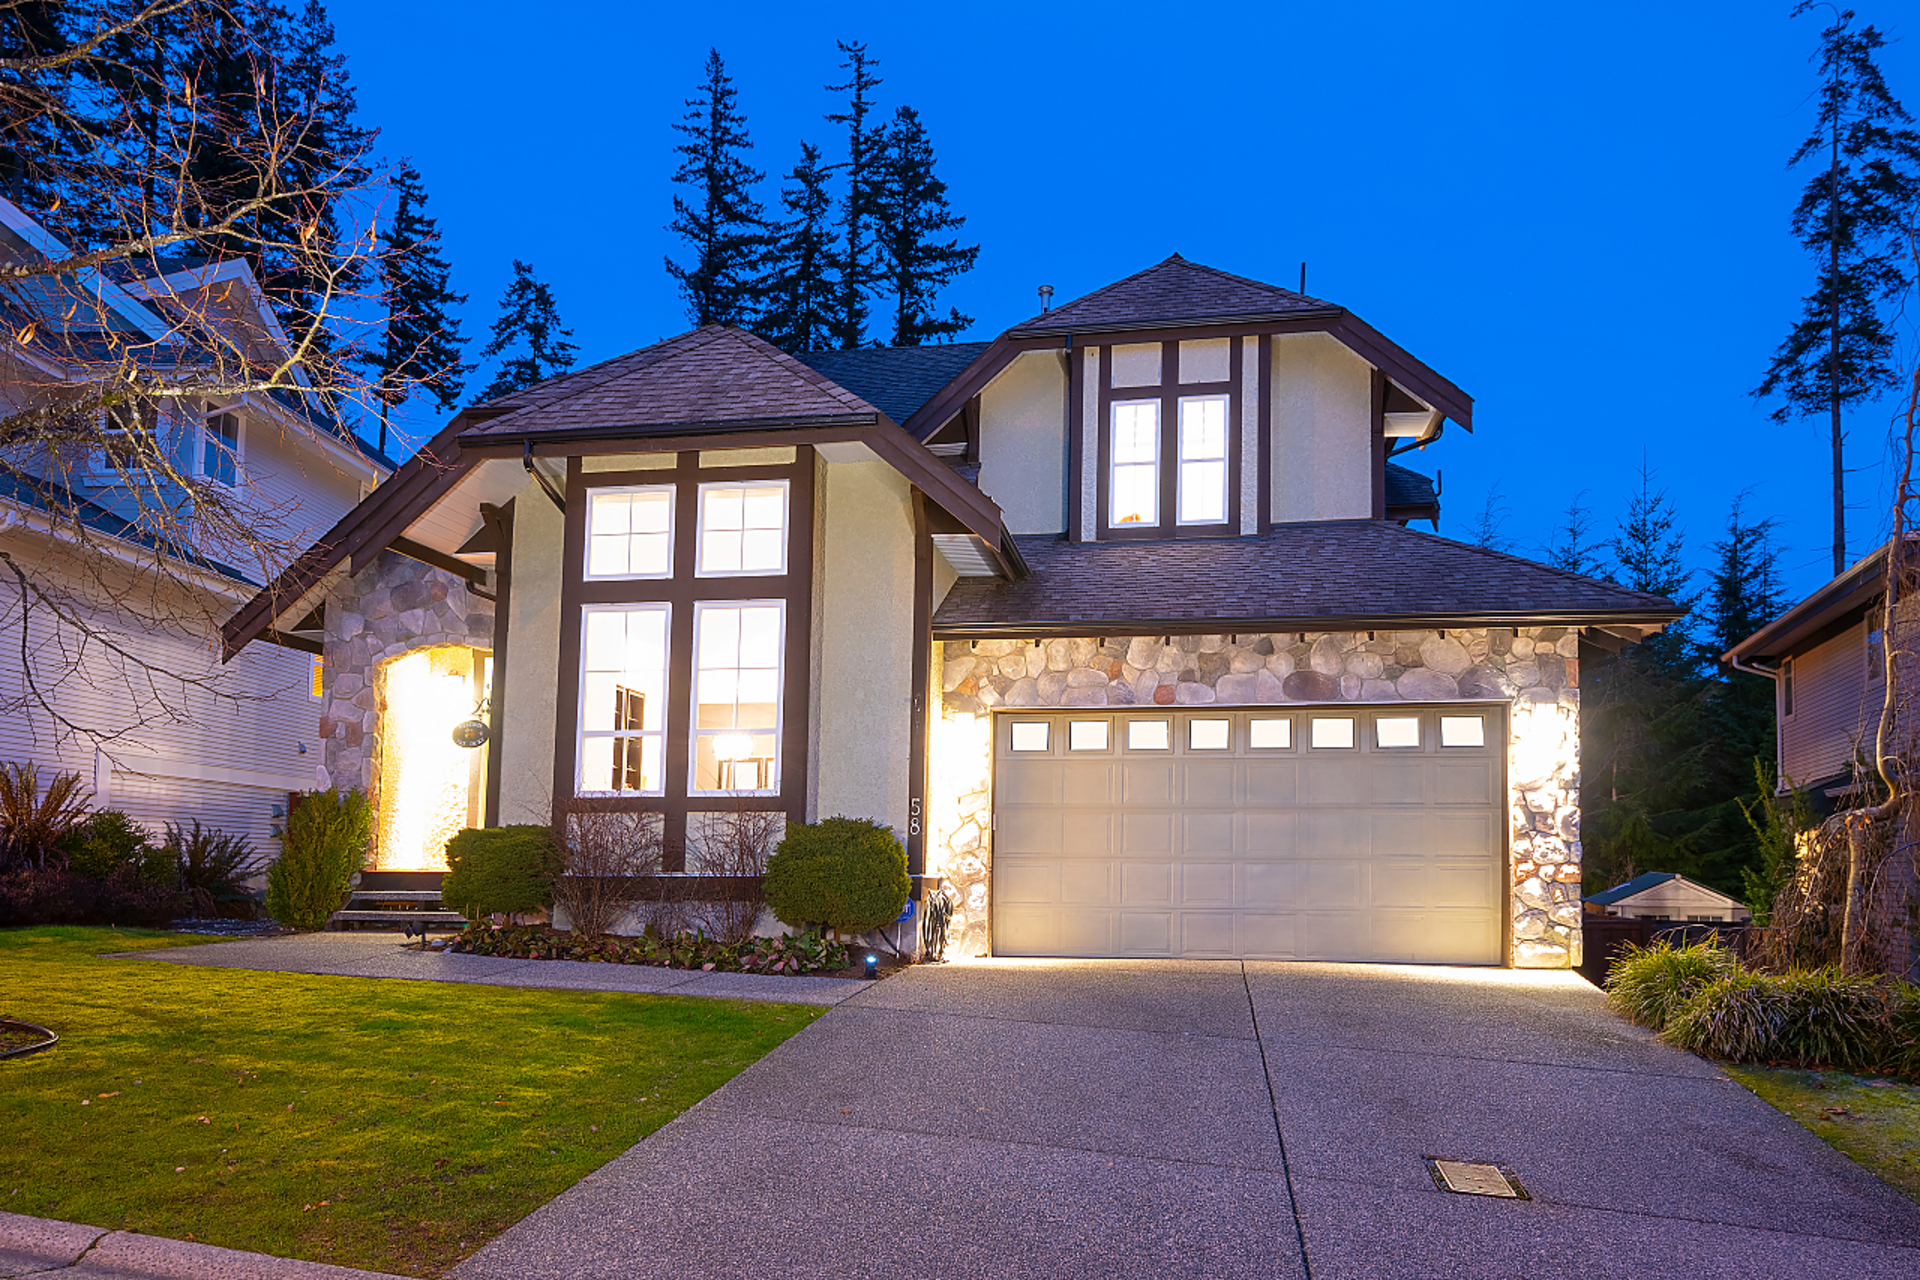 004 at 58 Cliffwood Drive, Heritage Woods PM, Port Moody